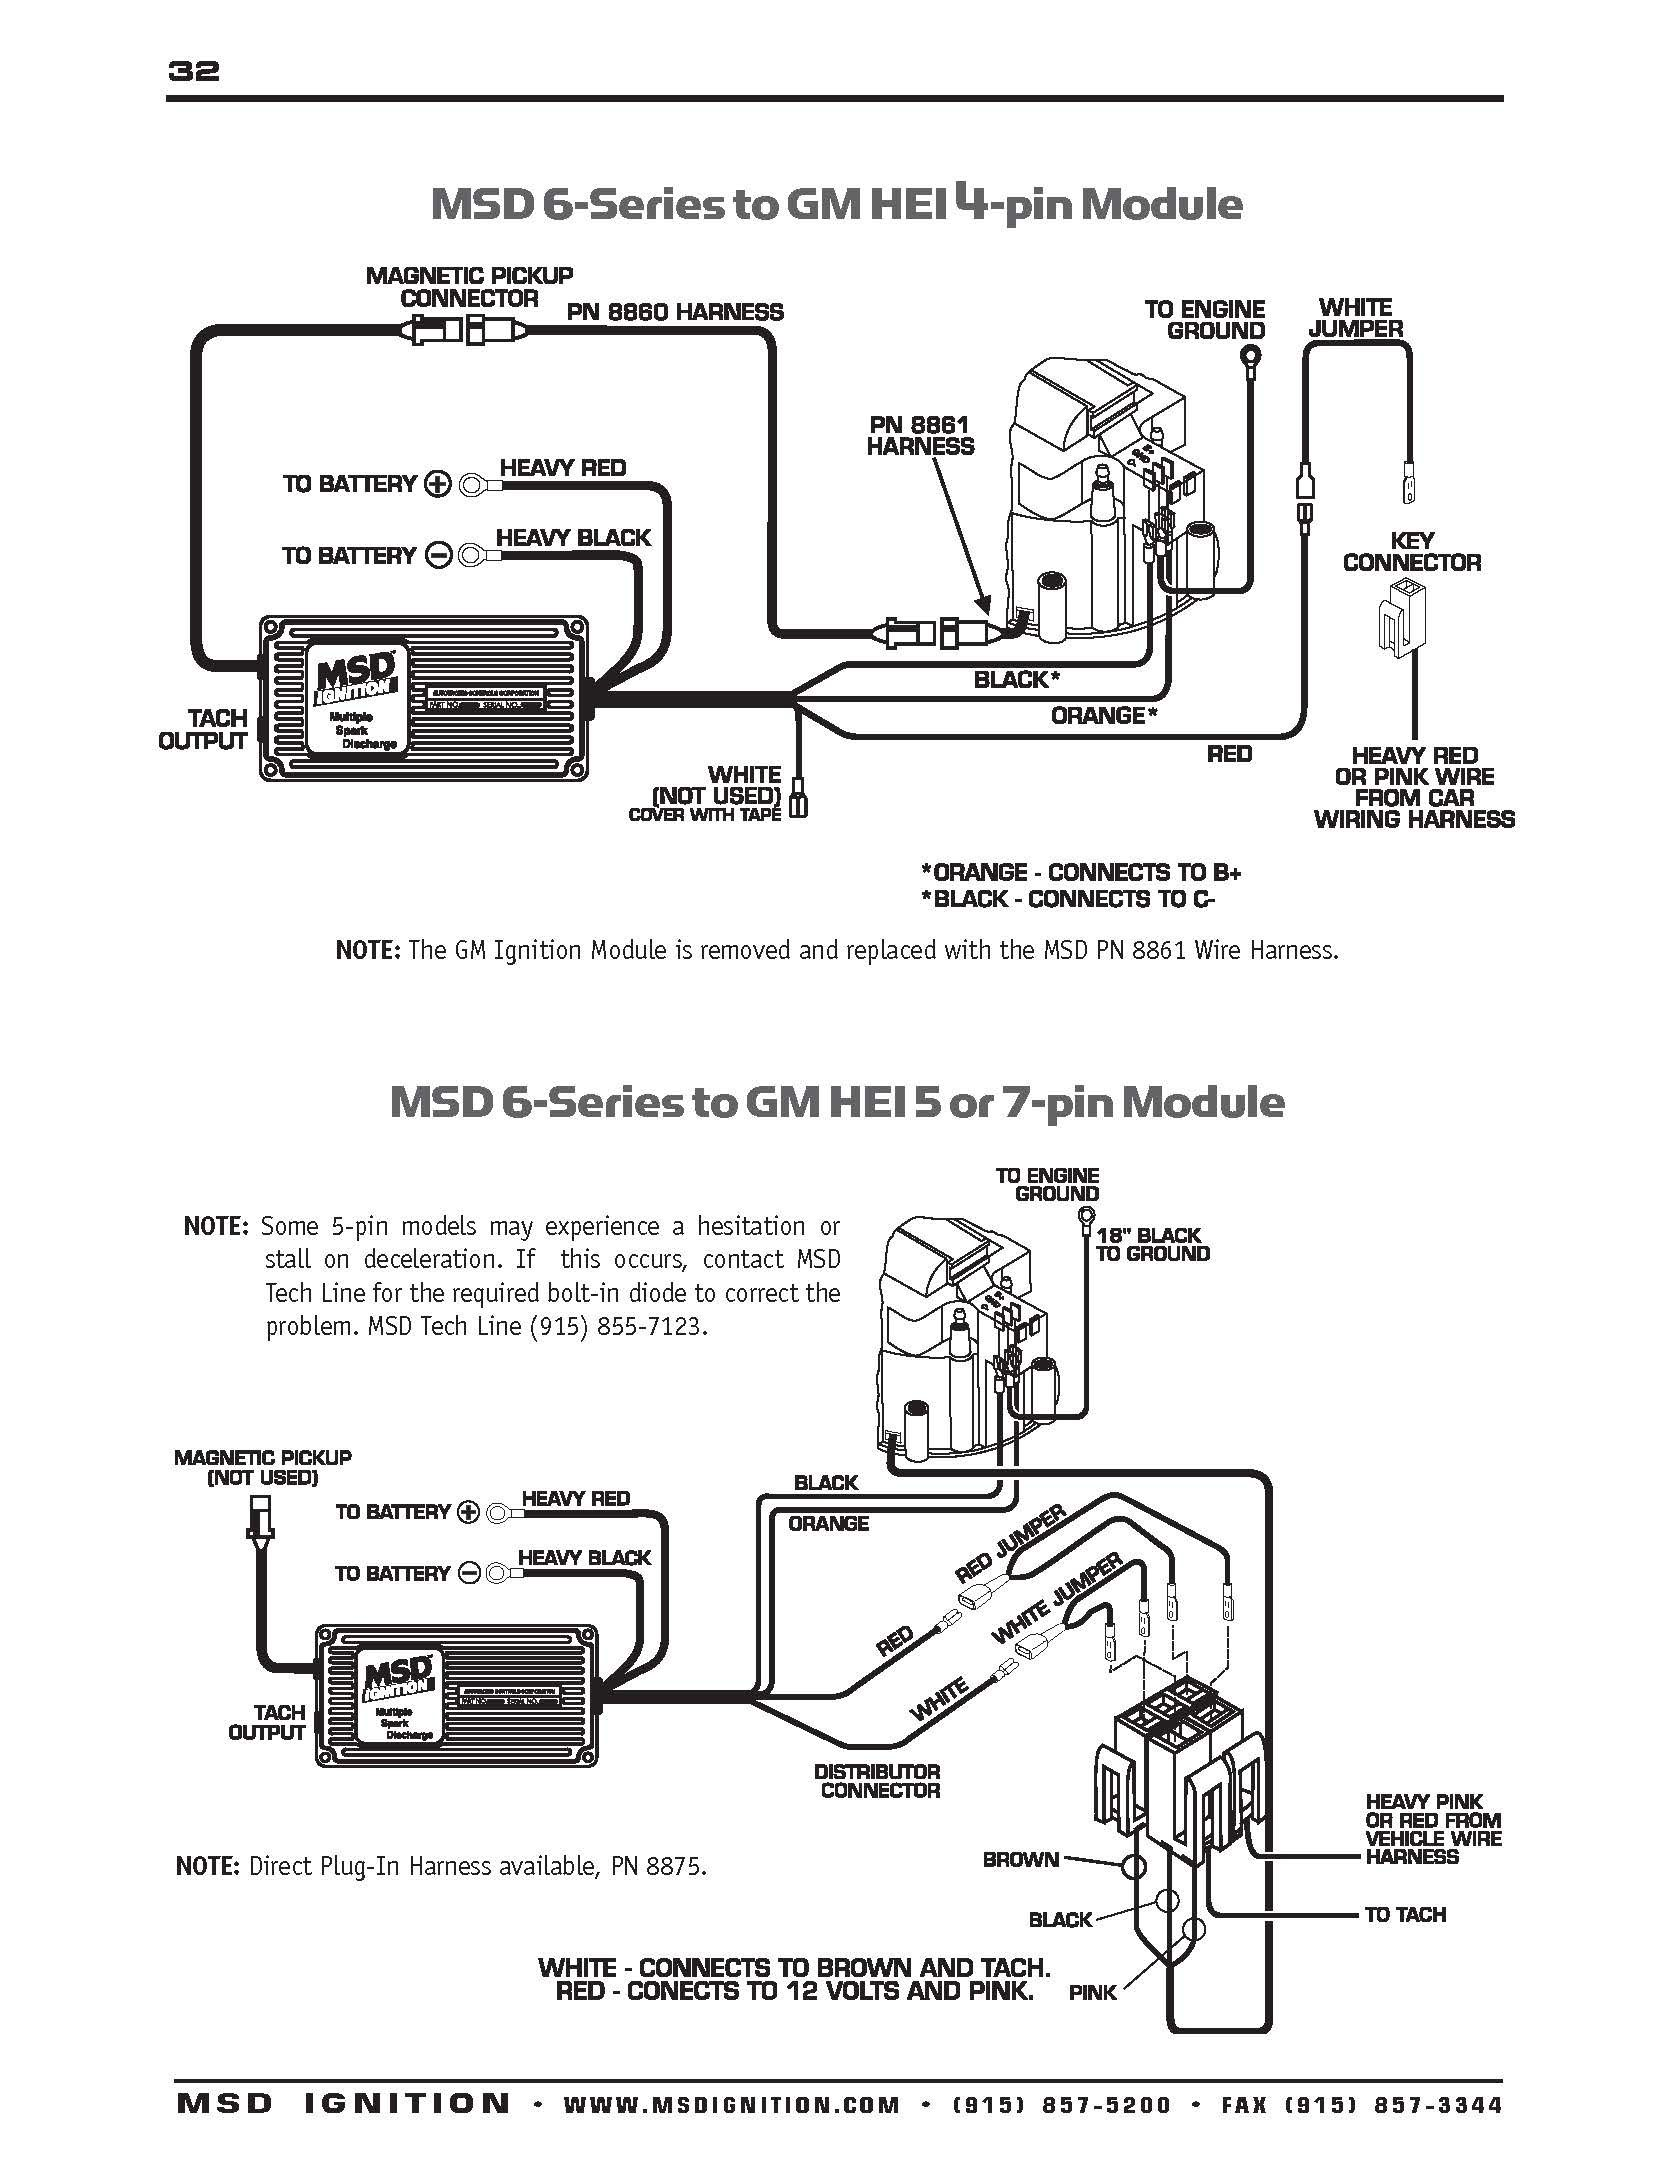 small resolution of msd ignition wiring diagrams 1966 chevelle diagram automotive spark plug wire diagram 2001 dodge ram 1500 ignition wire diagram